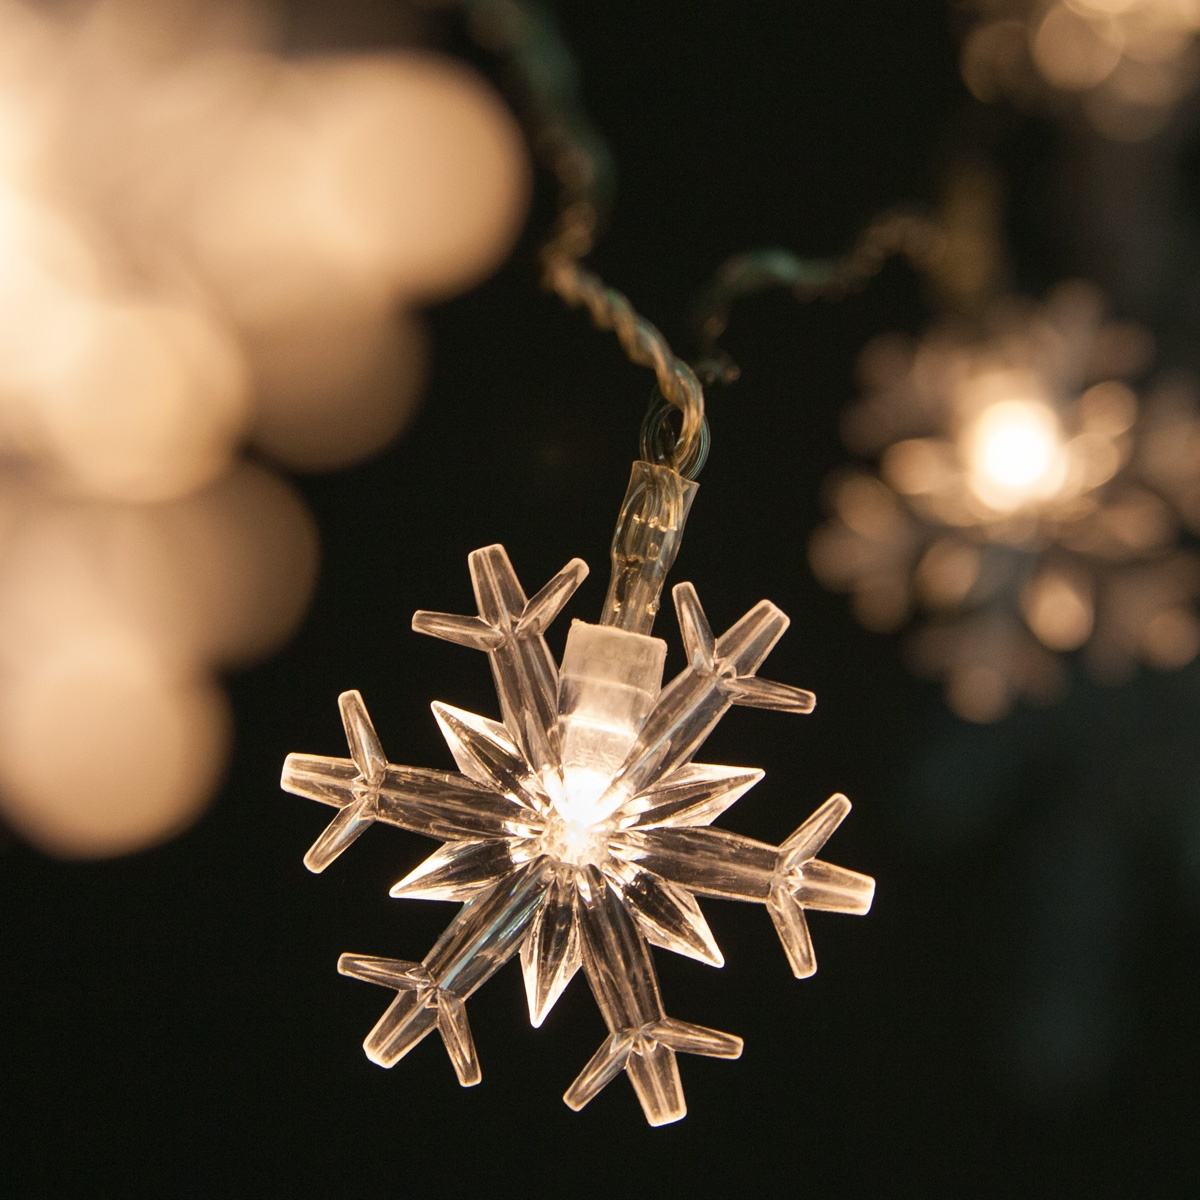 Battery Operated Snowflake String Lights, 10 Warm White LED Lights -